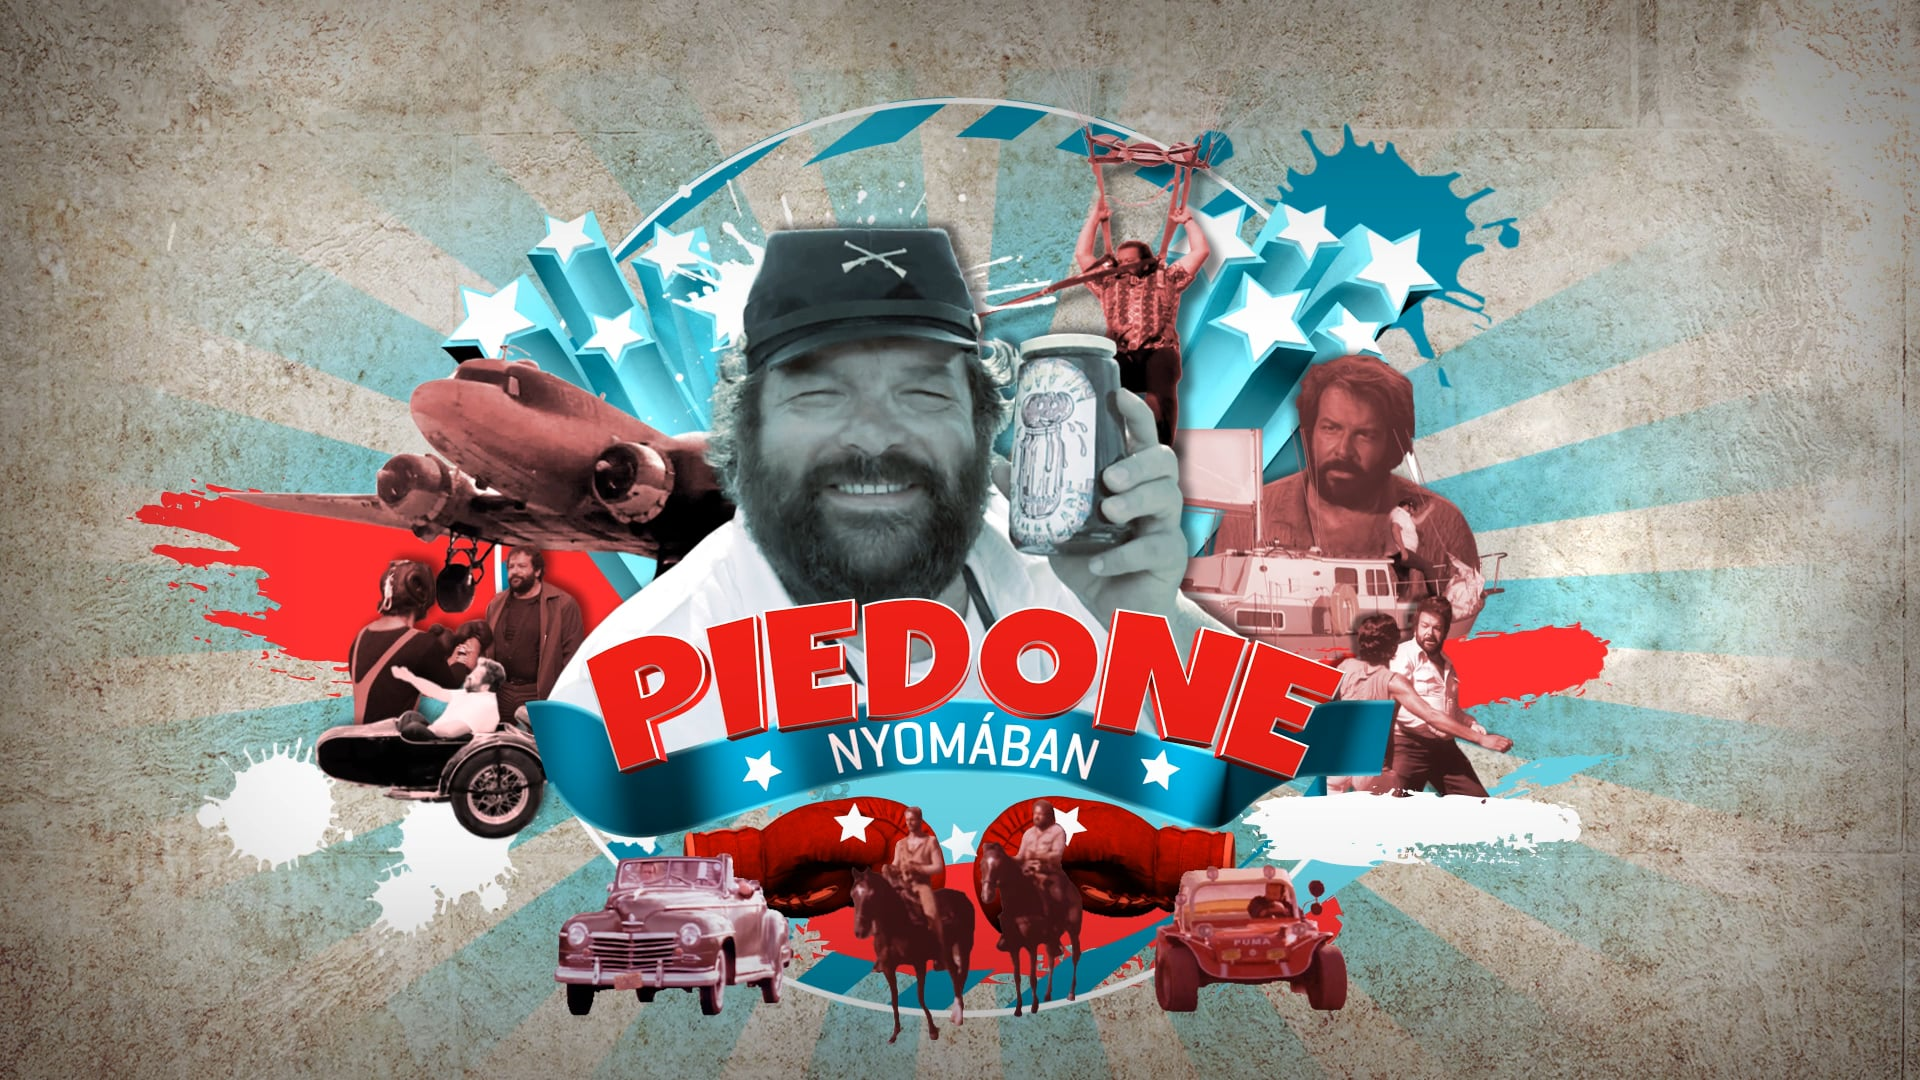 Piedone nyomában (Bud Spencer biographical documentary) | opening titles